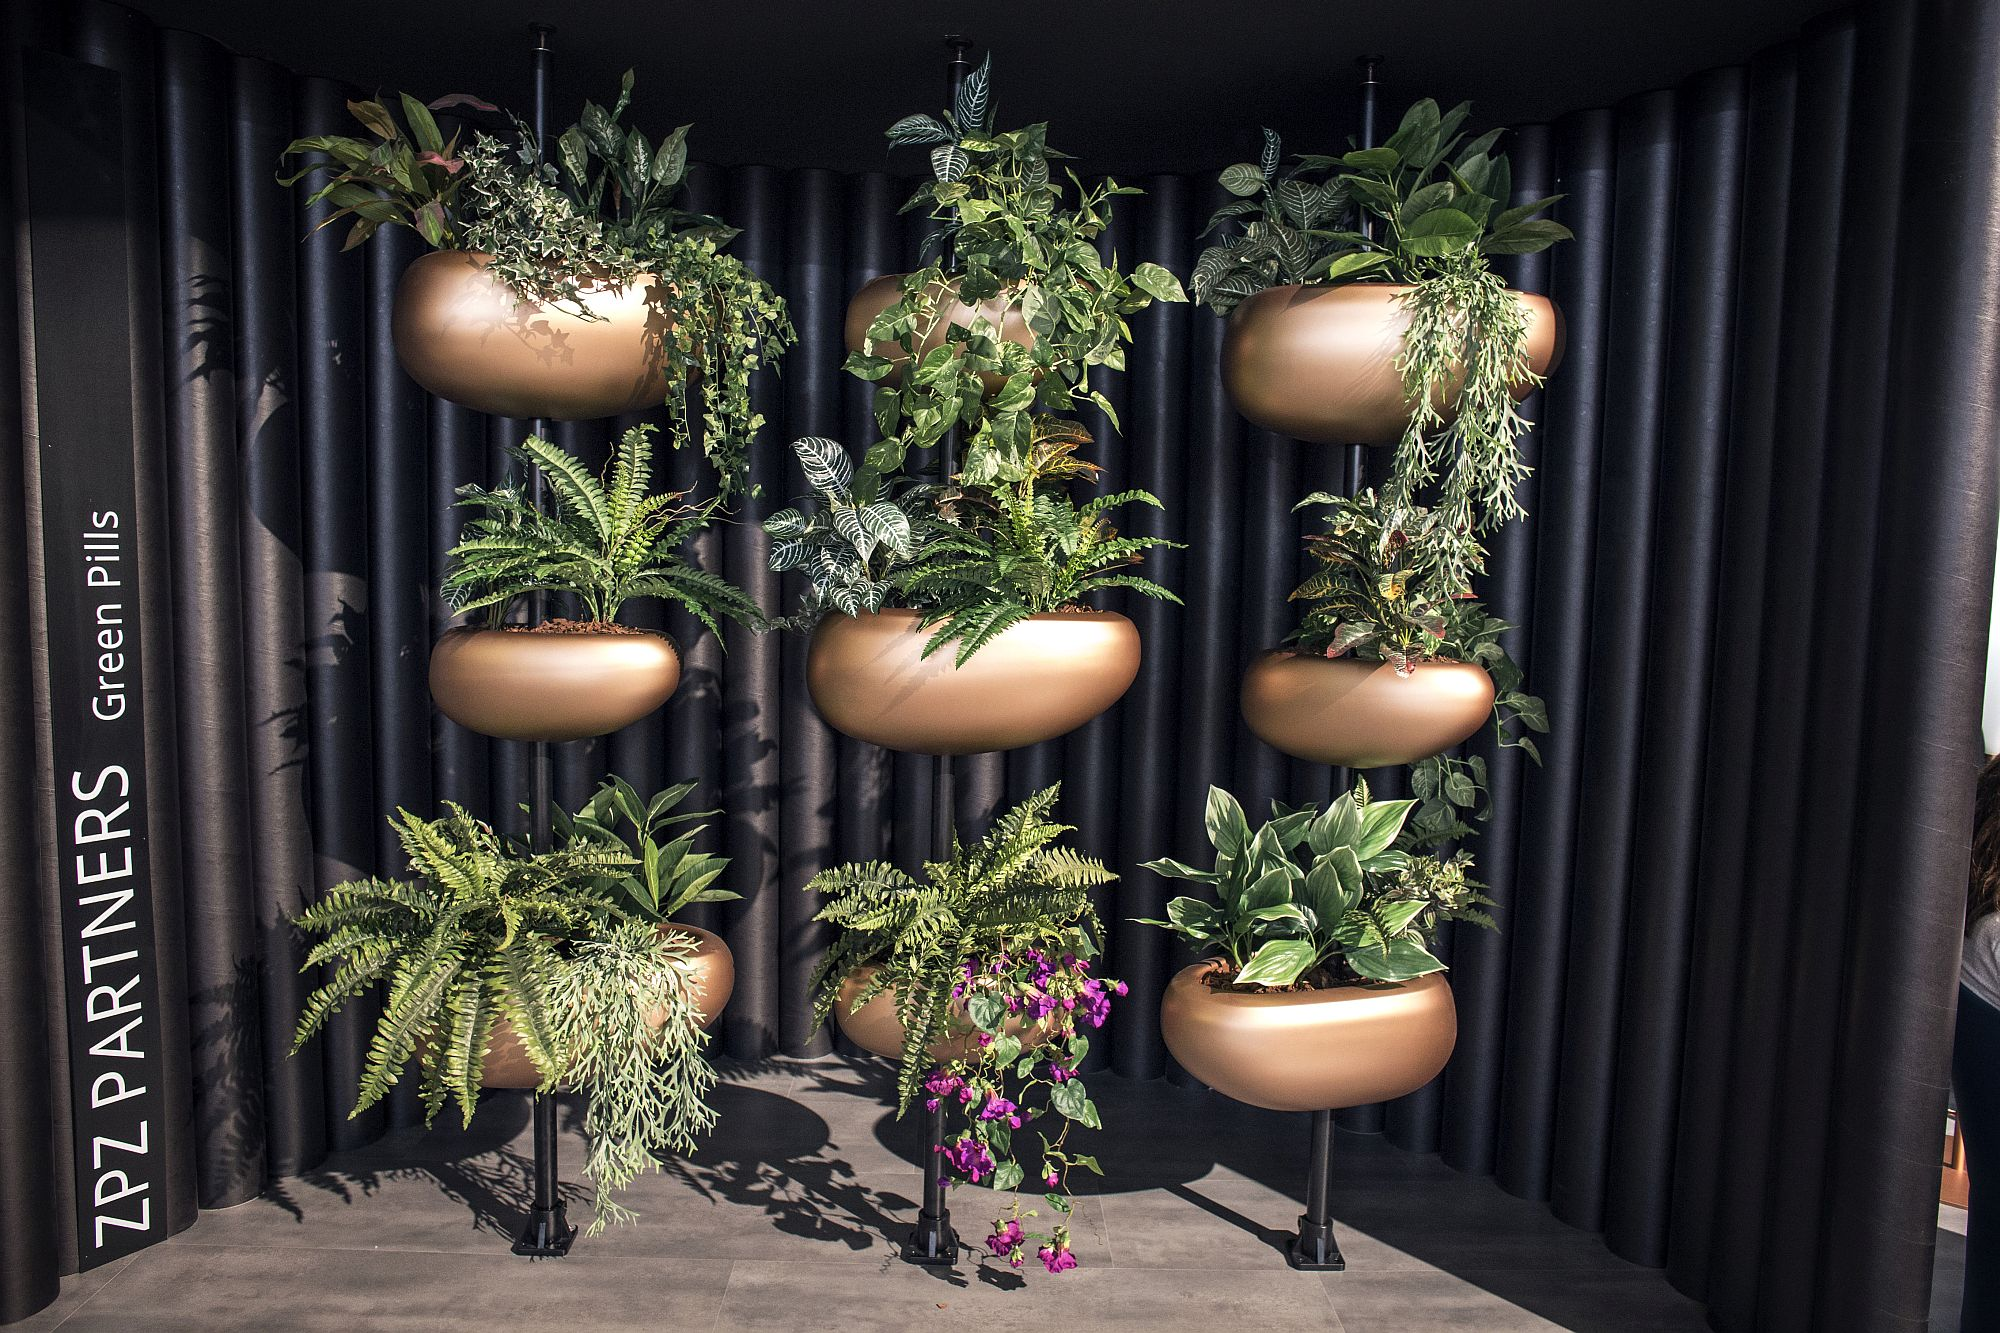 Innovative planters with metallic glint bring greenery to urban spaces